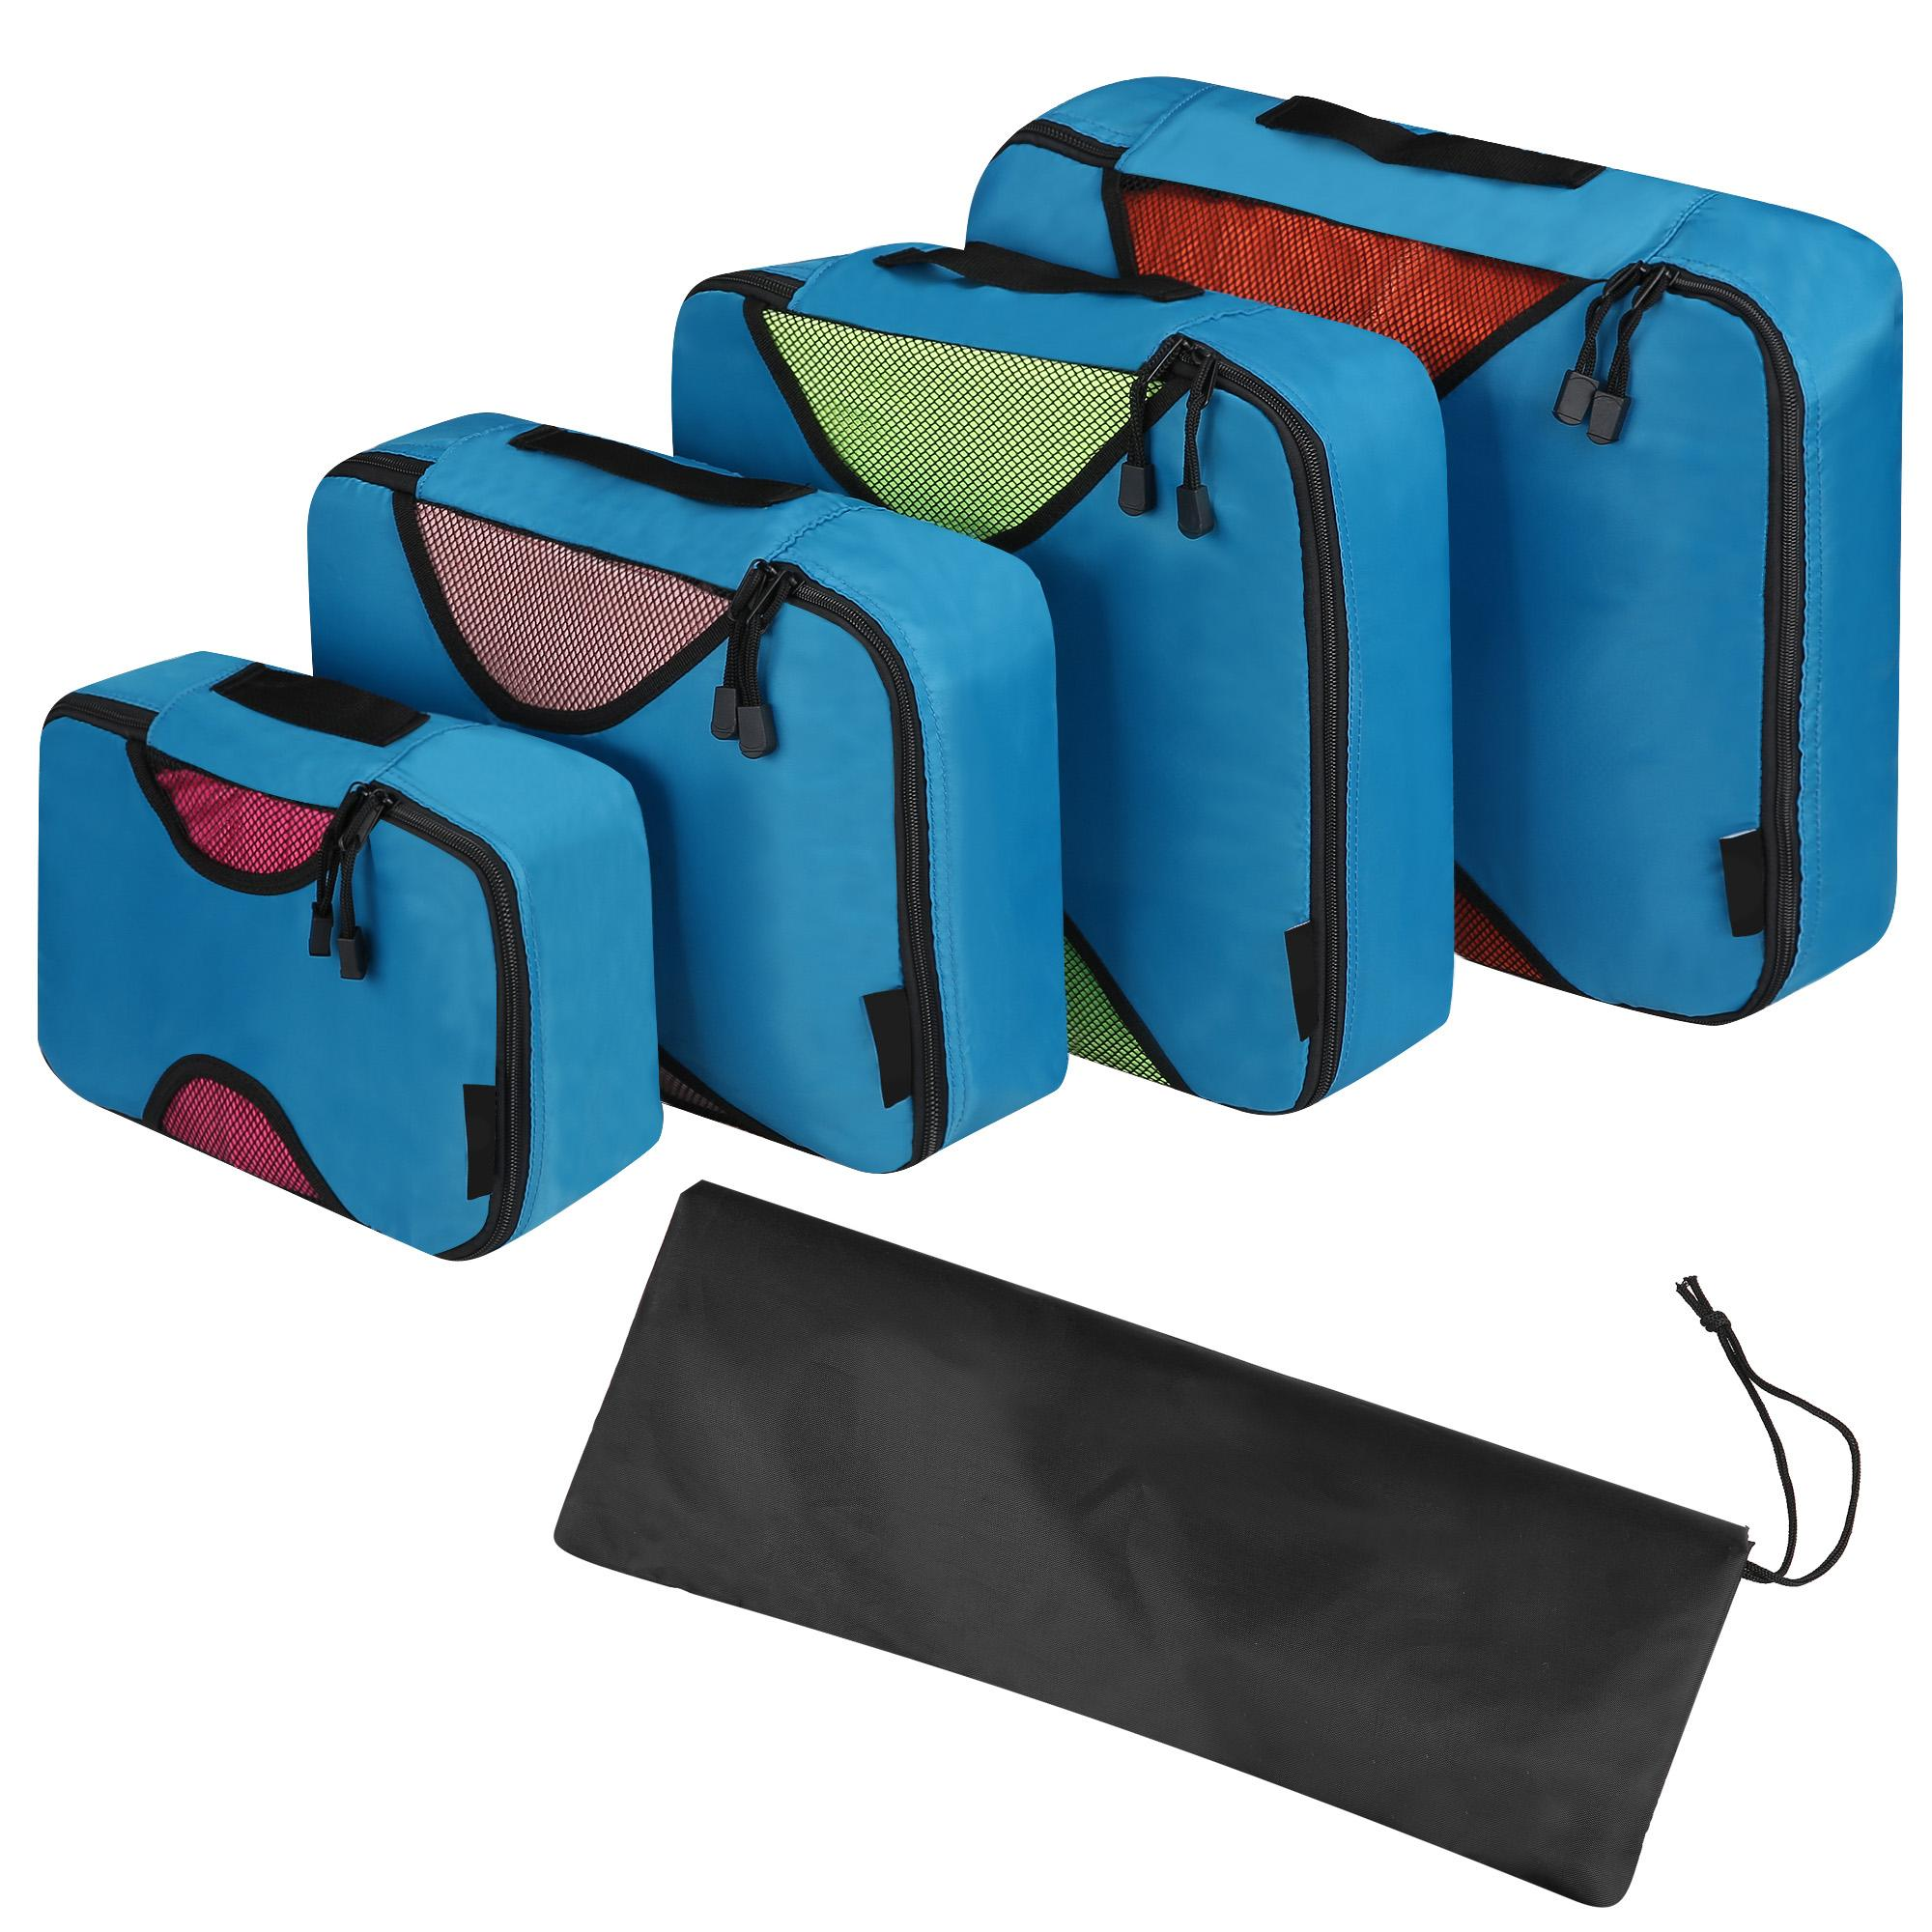 Travel Packing Bag Cubes Set of 4 Pieces Organizer Bag Case For Shoes Cloths Cosmetics PAGACAT